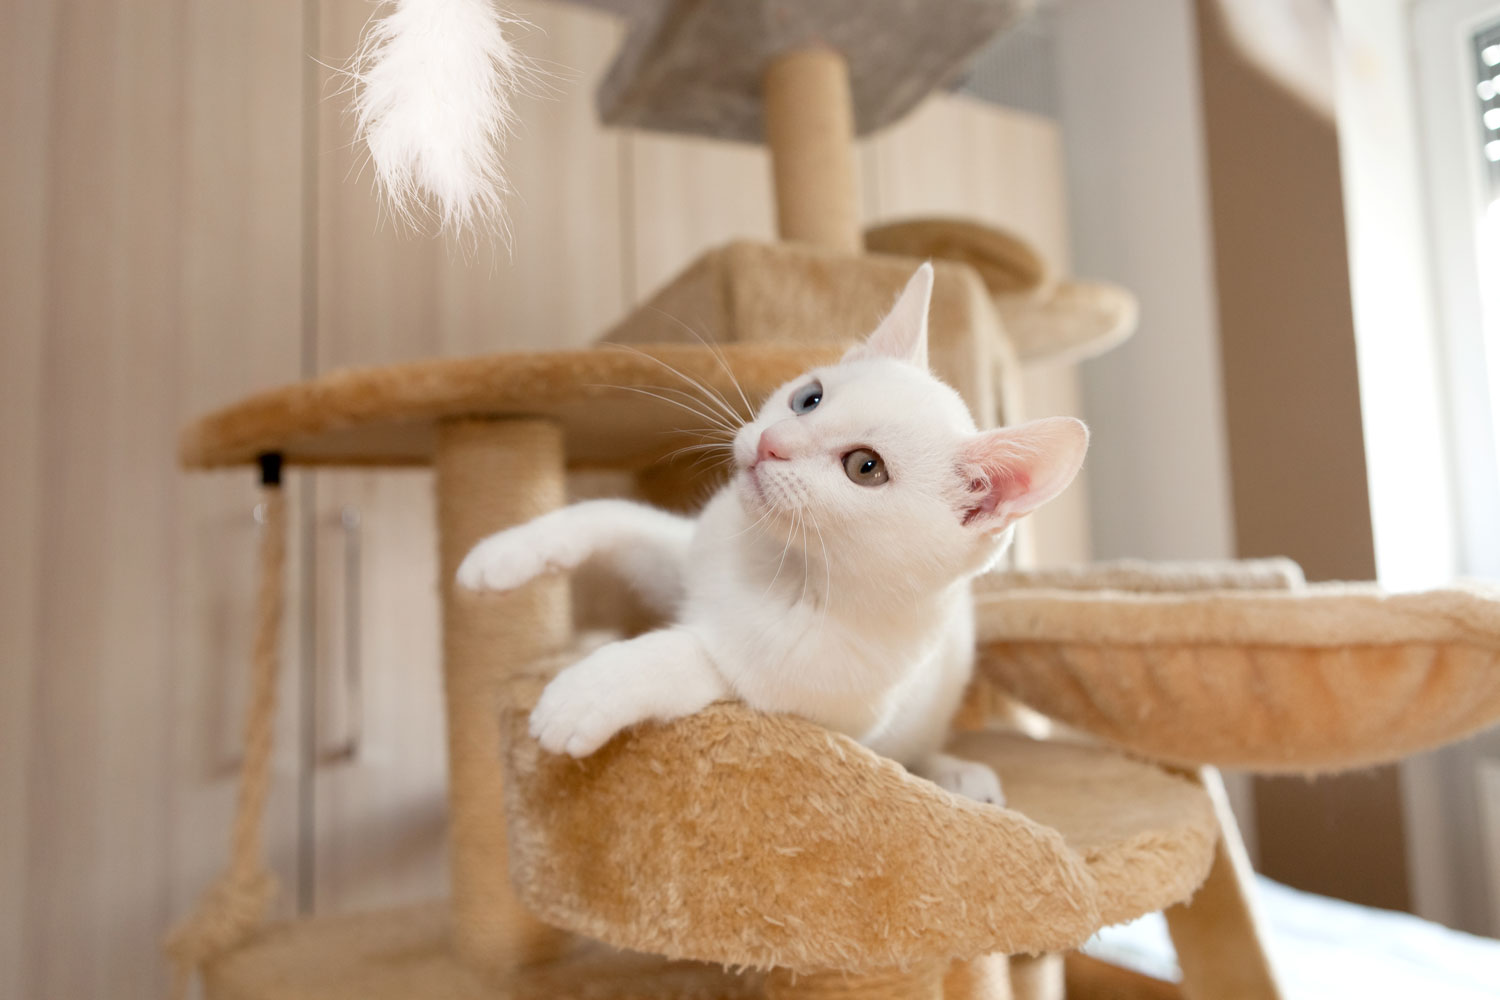 AA beautiful unicolored cat lying on a small playing platform while staring at the camera, 9 Types Of Cat Furniture To Know